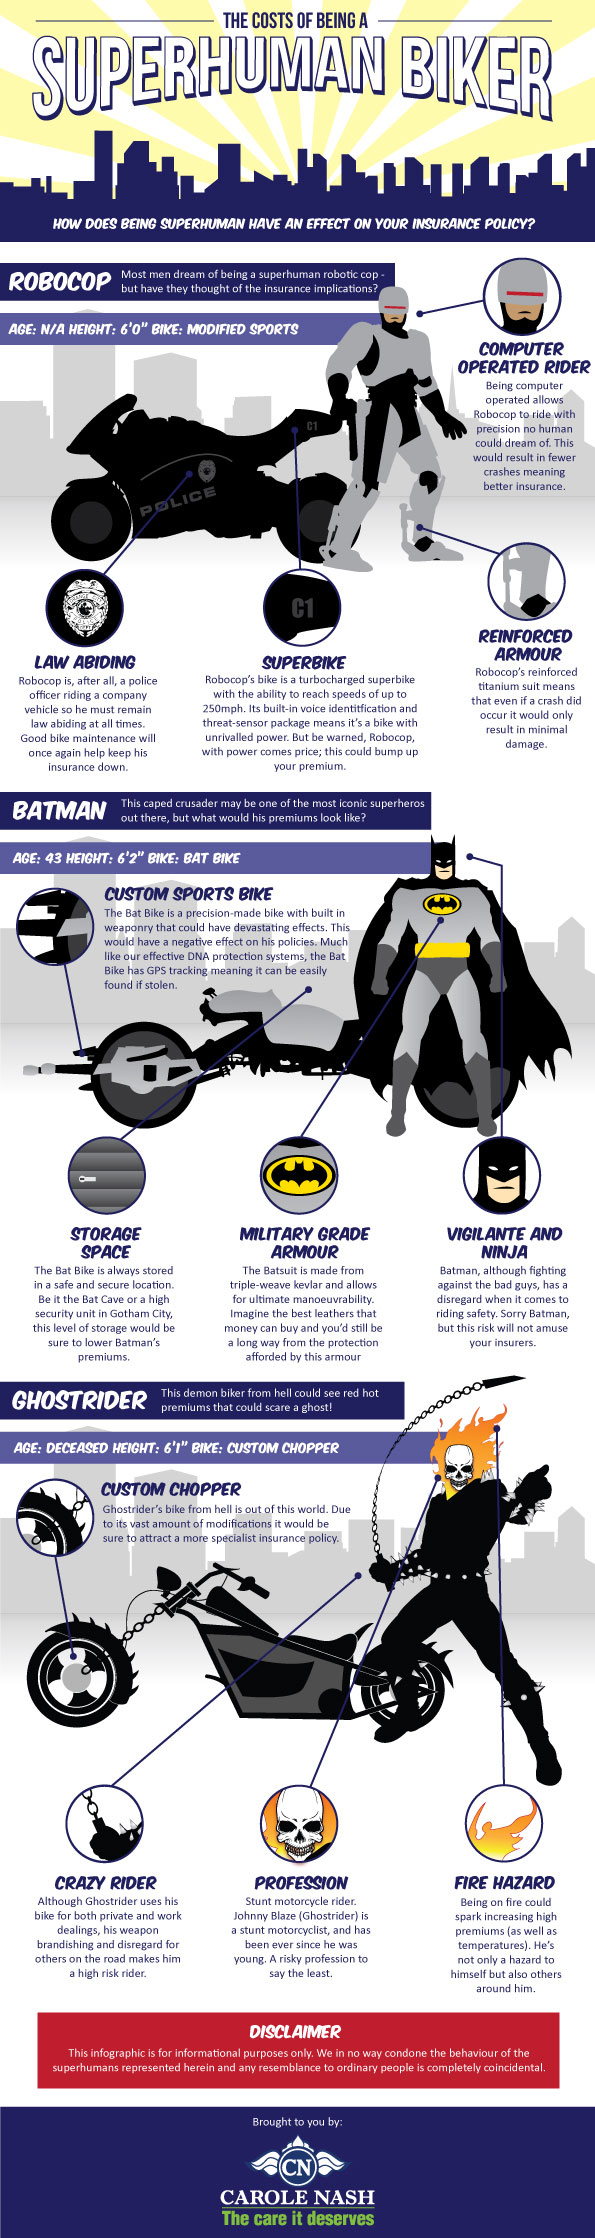 070914-superhero-biker-insurance-infographic